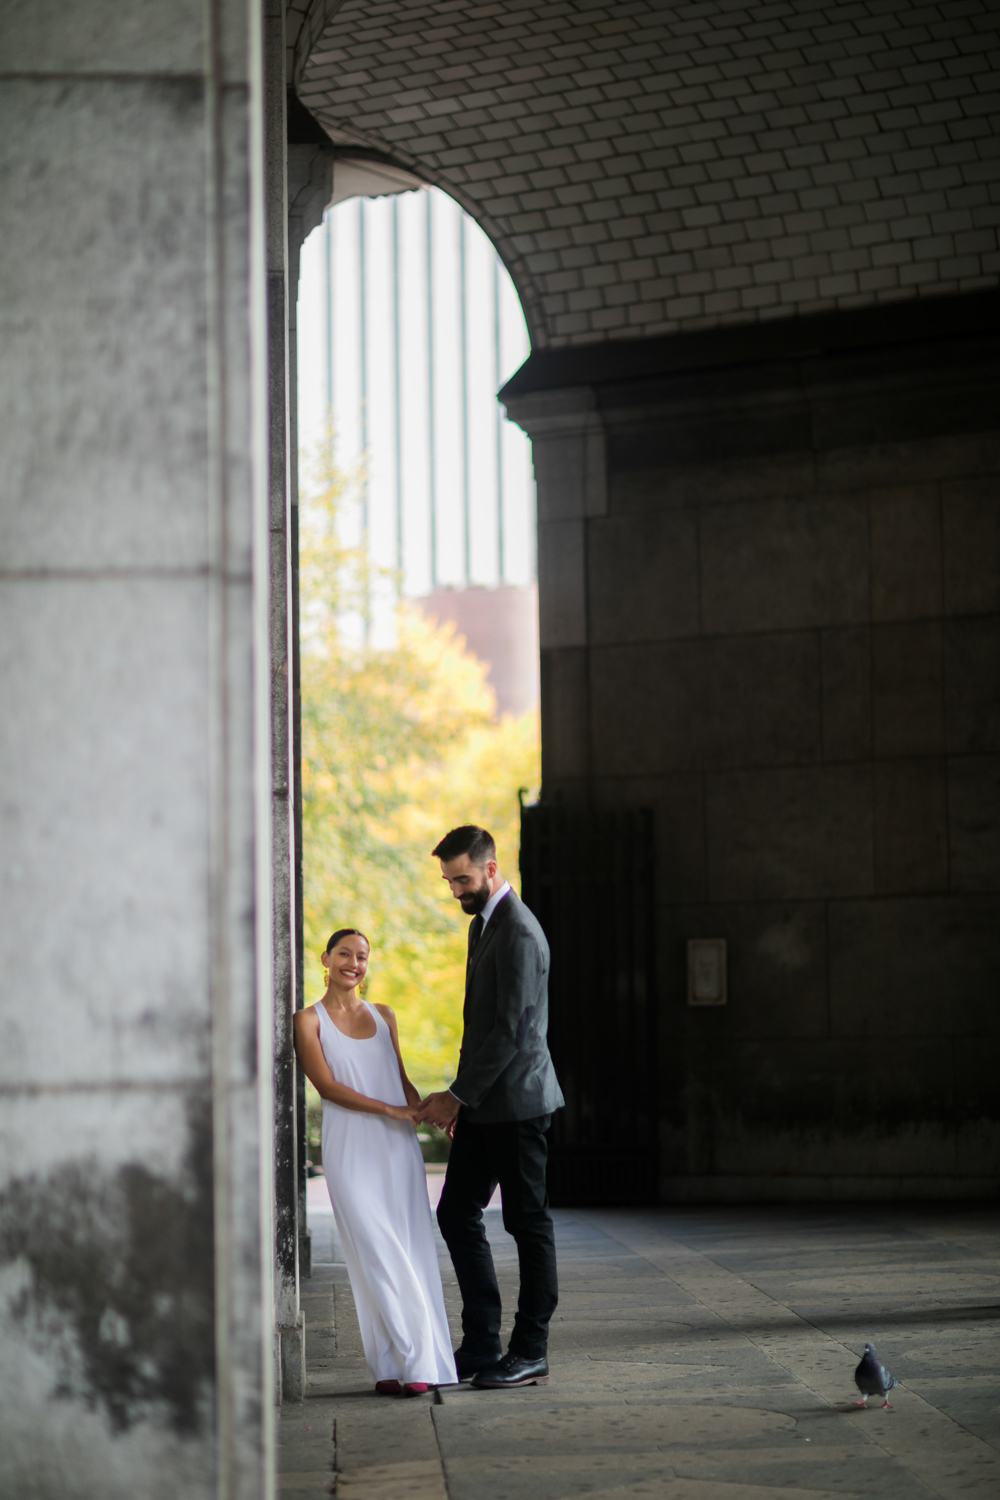 A bride and groom smile while holding hands in the park.